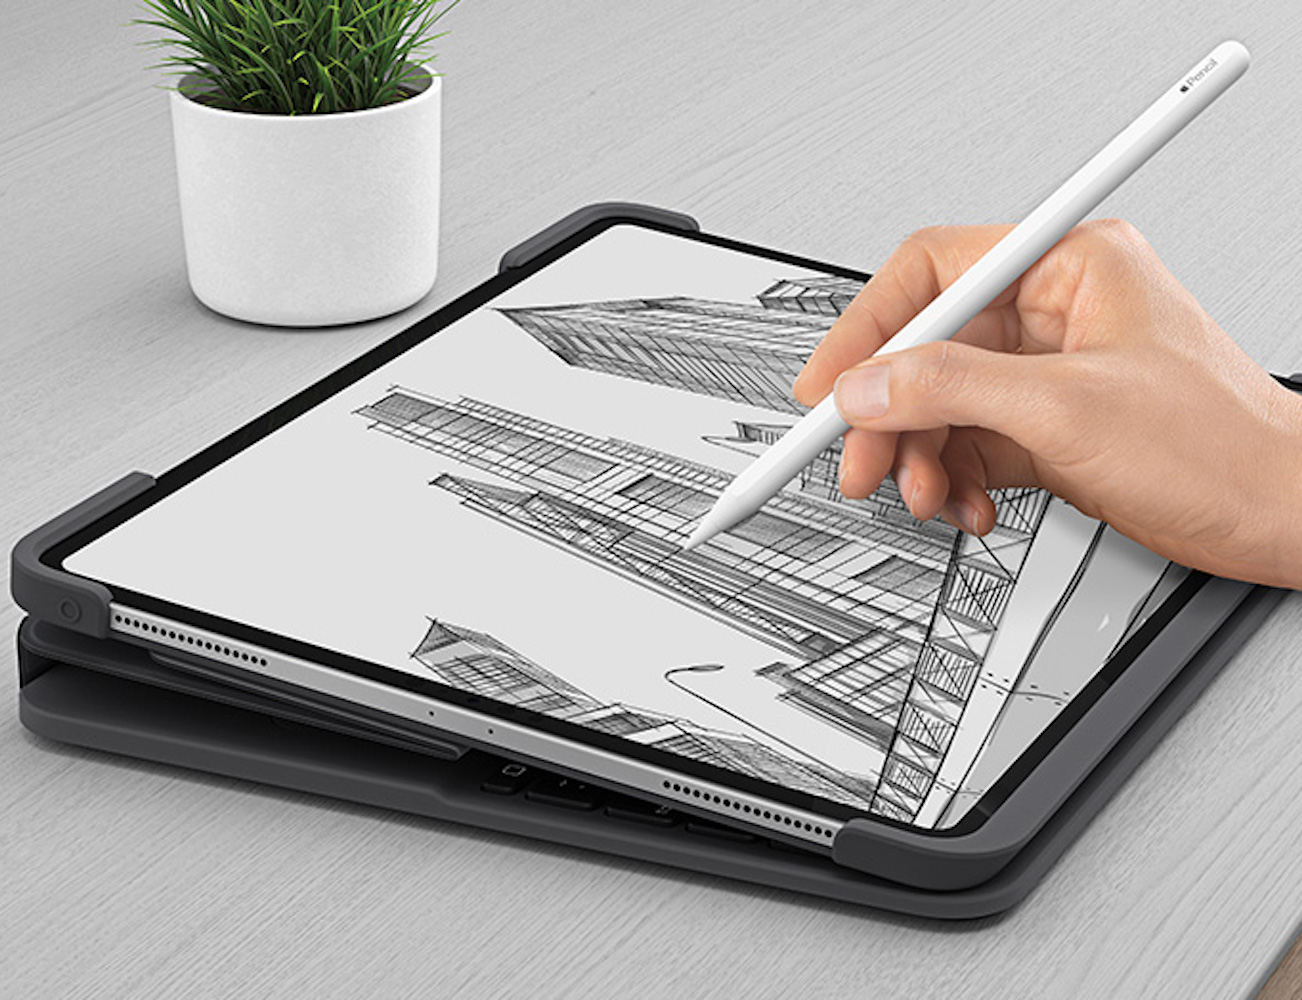 Logitech Slim Folio Pro iPad Pro Keyboard Case